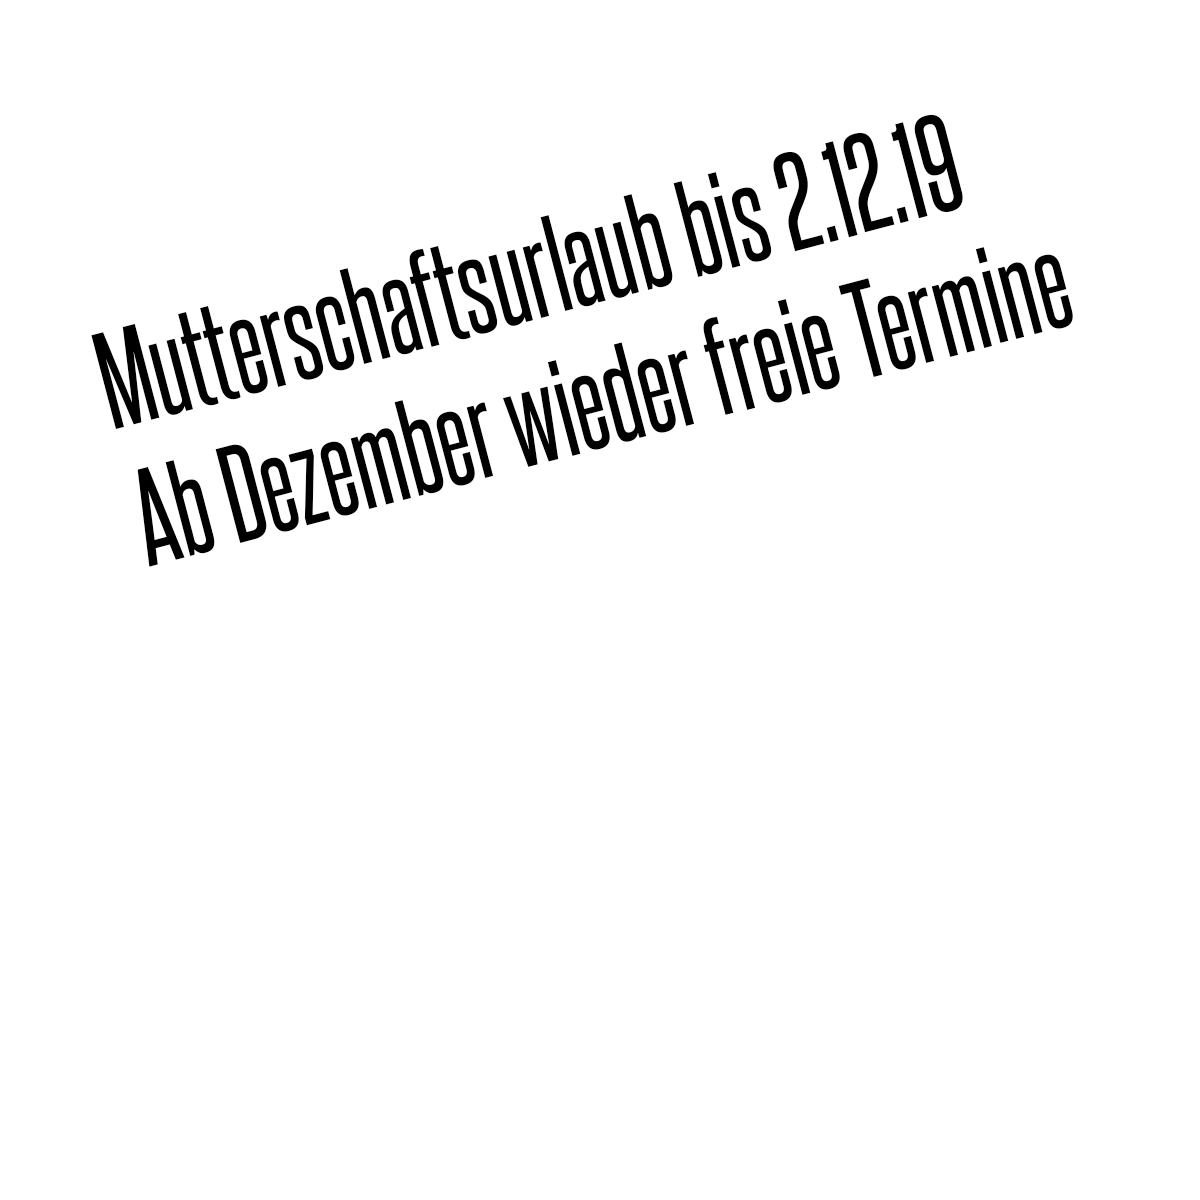 Silent Fox Tattoo